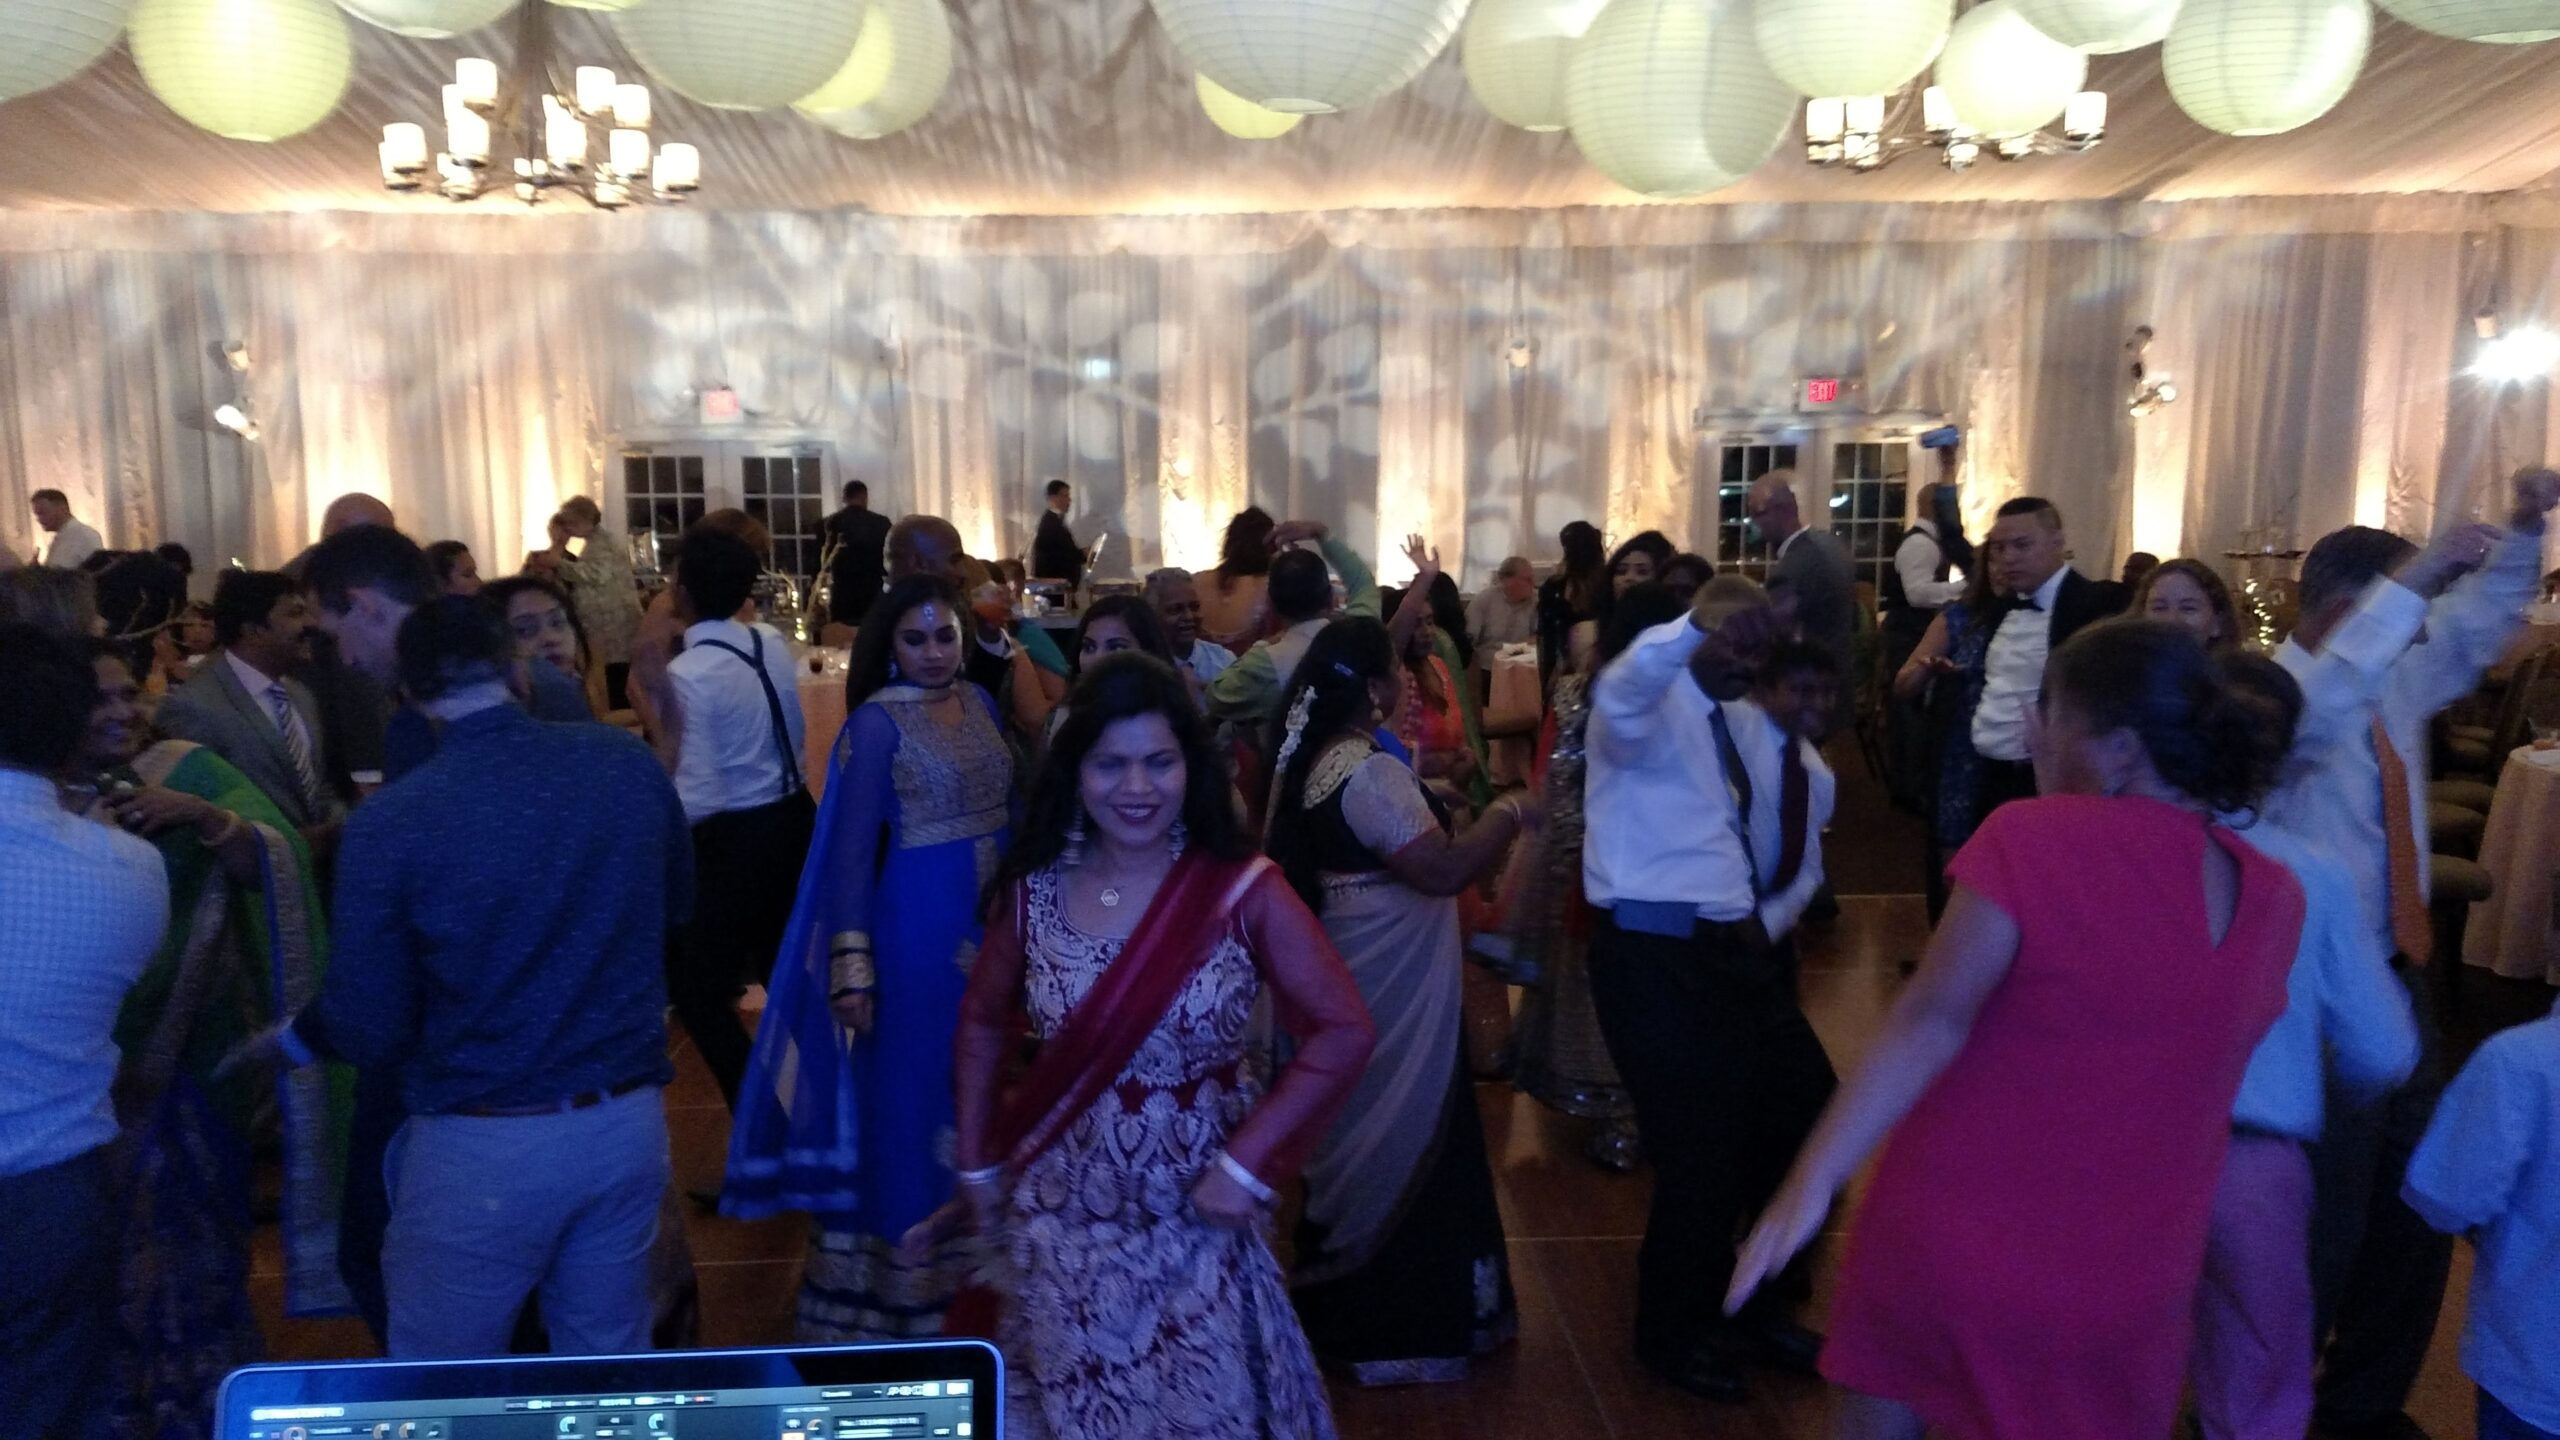 Dancefloor at Bollywood Greenwich Hyatt Wedding